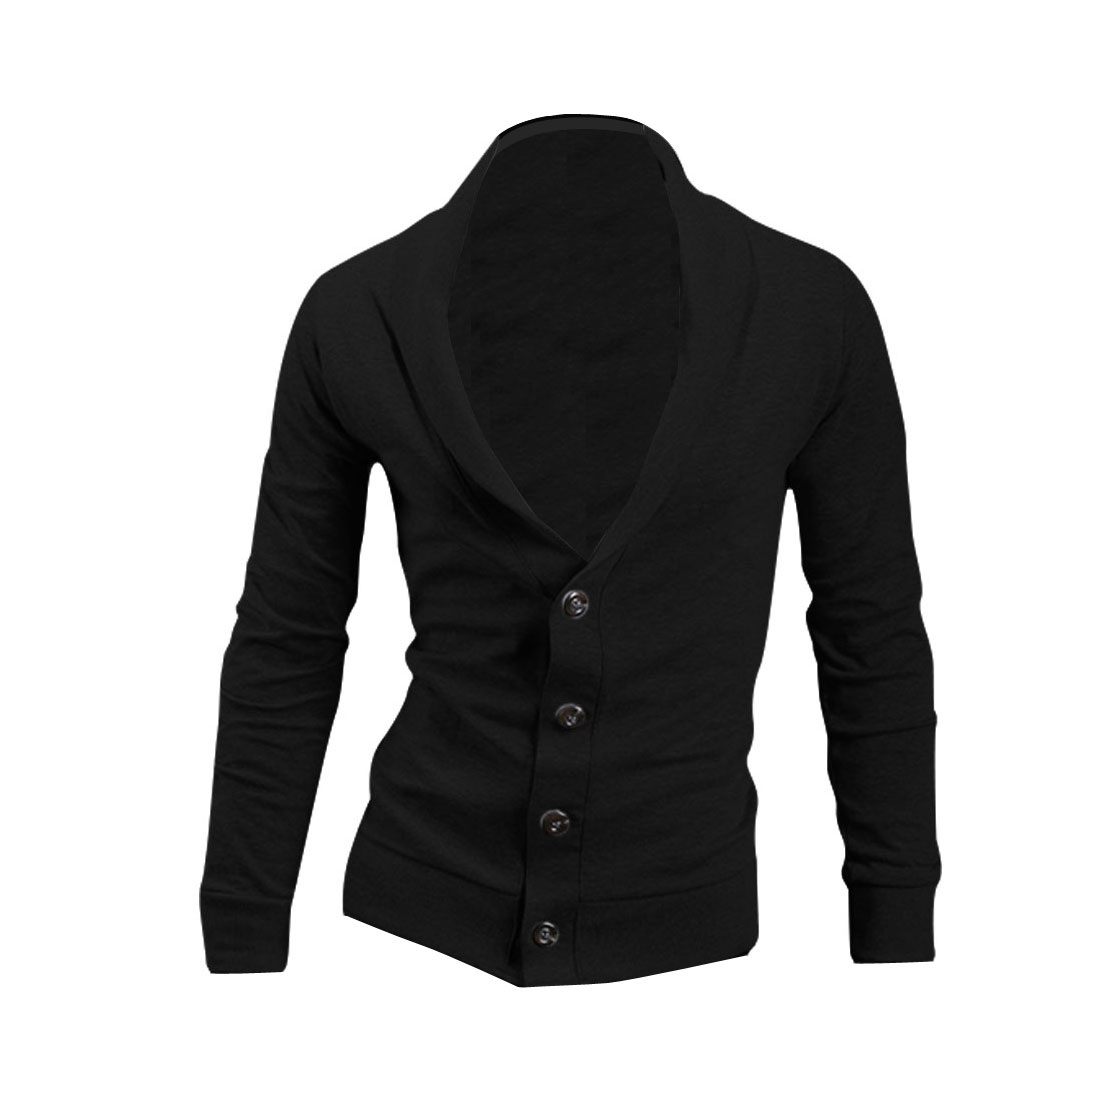 Men Convertible Collar Single Breasted Cardigan Black L